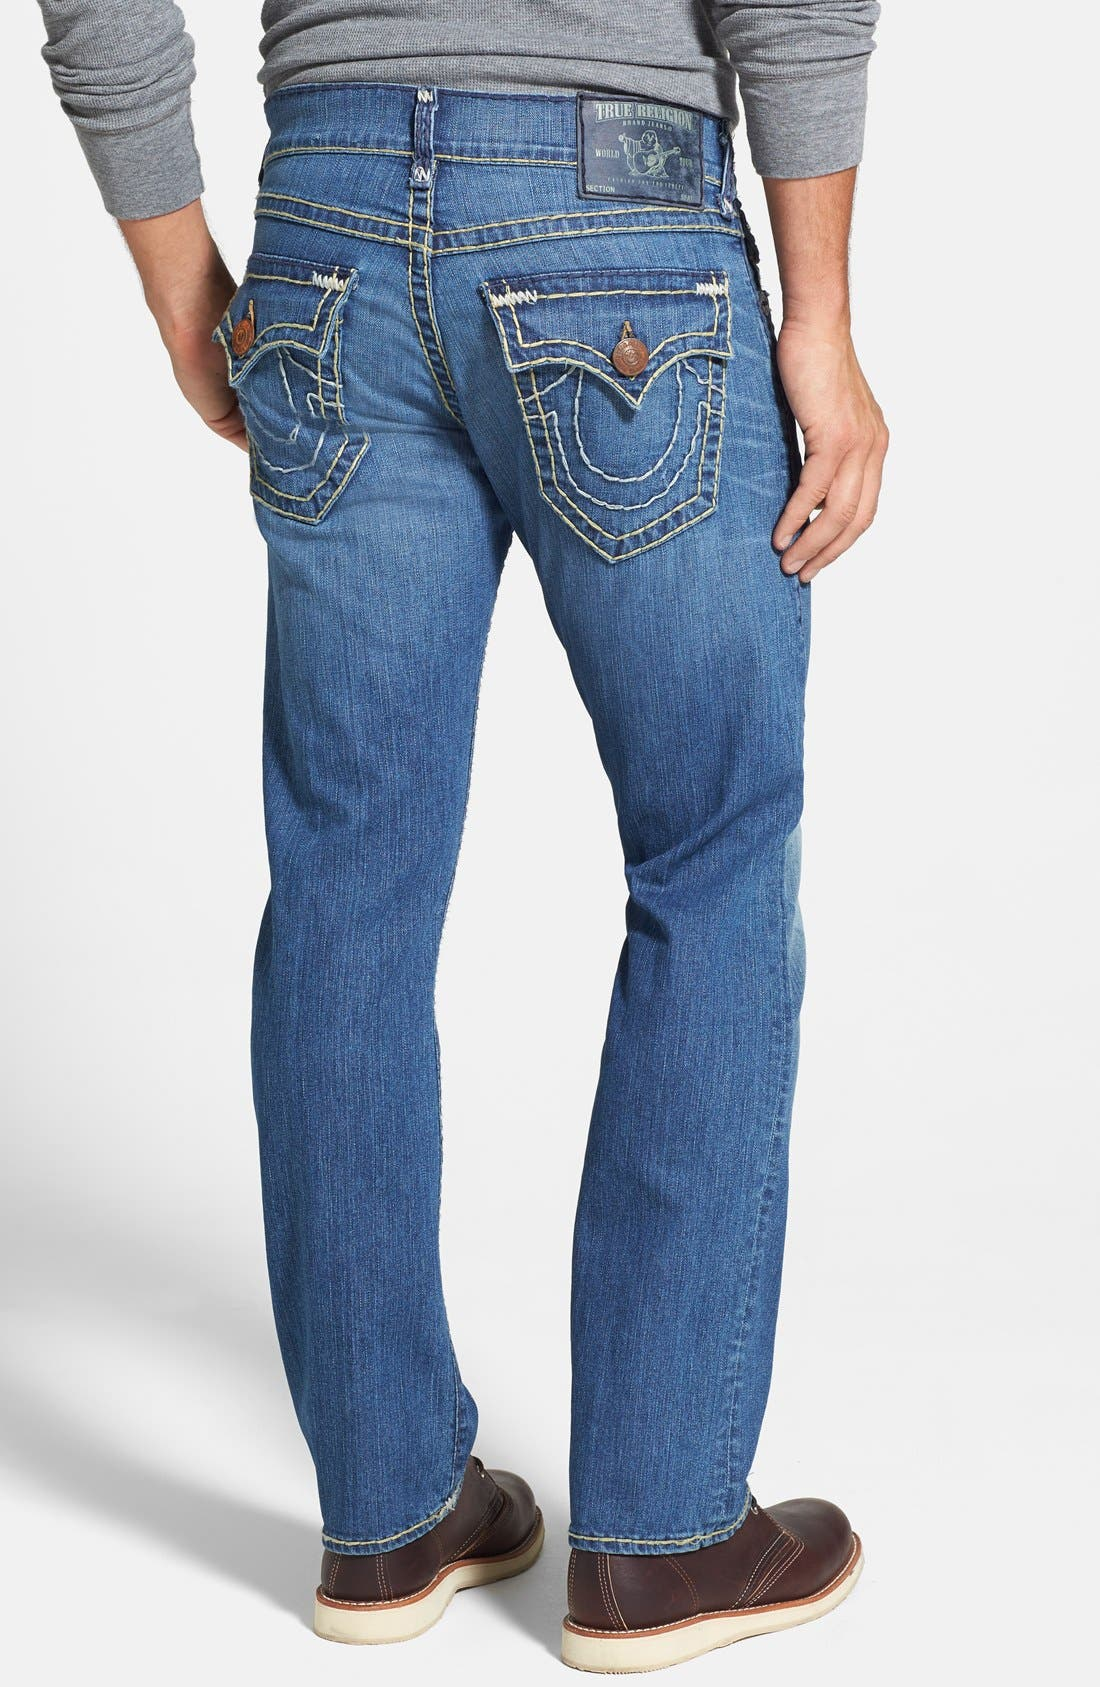 Alternate Image 1 Selected - True Religion Brand Jeans 'Ricky' Relaxed Fit Jeans (Azwl Malibu Cruise)